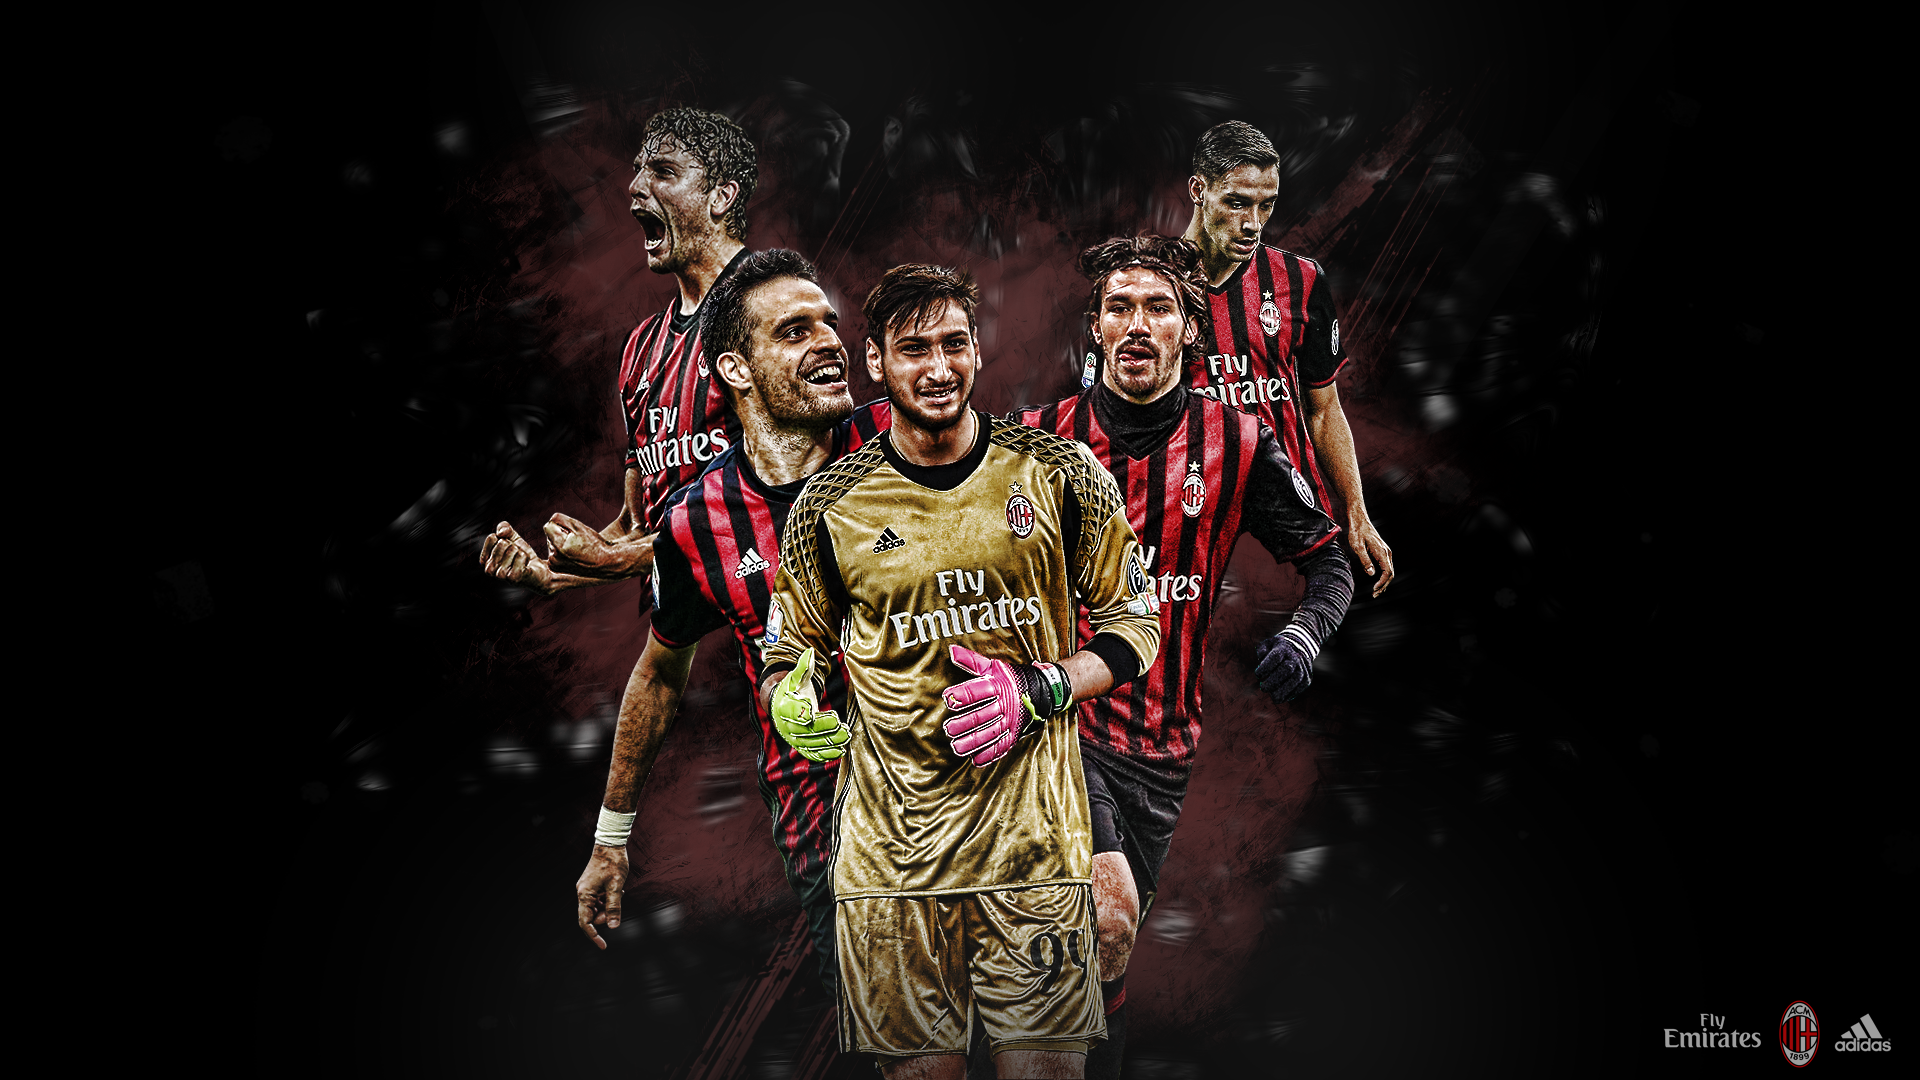 Hd wallpaper ac milan - Ac Milan Wallpaper By Skojaf Ac Milan Wallpaper By Skojaf